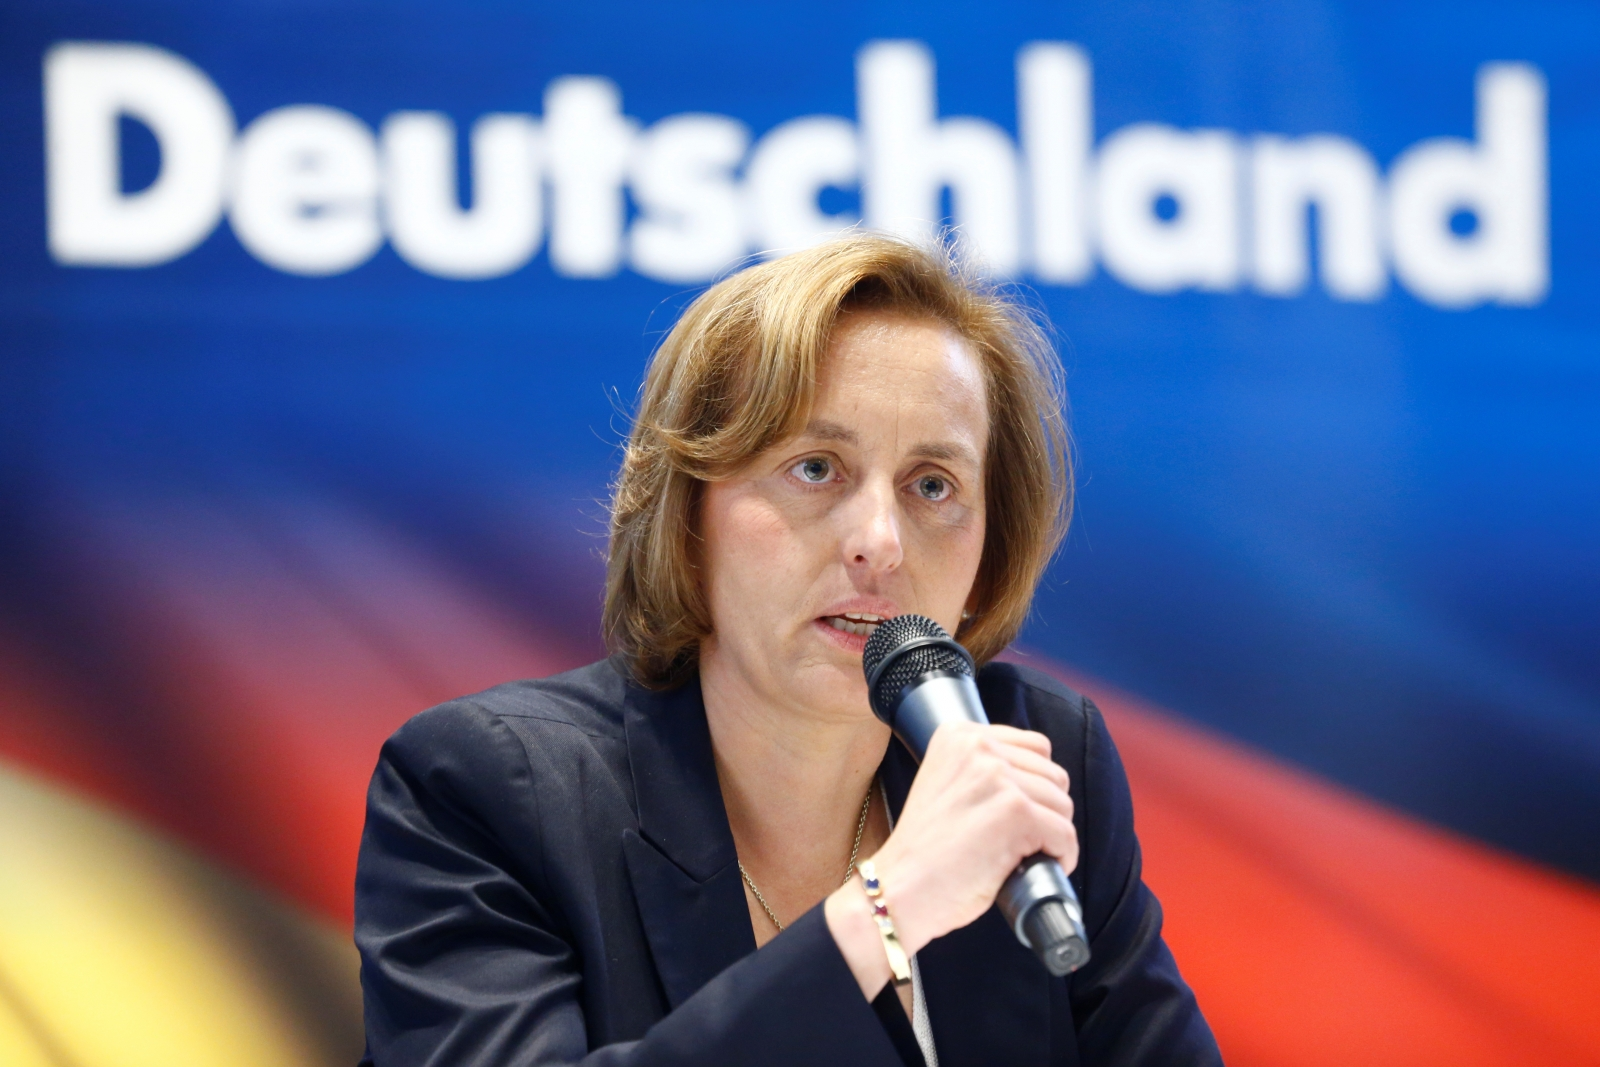 German MP probed for anti-Muslim posts